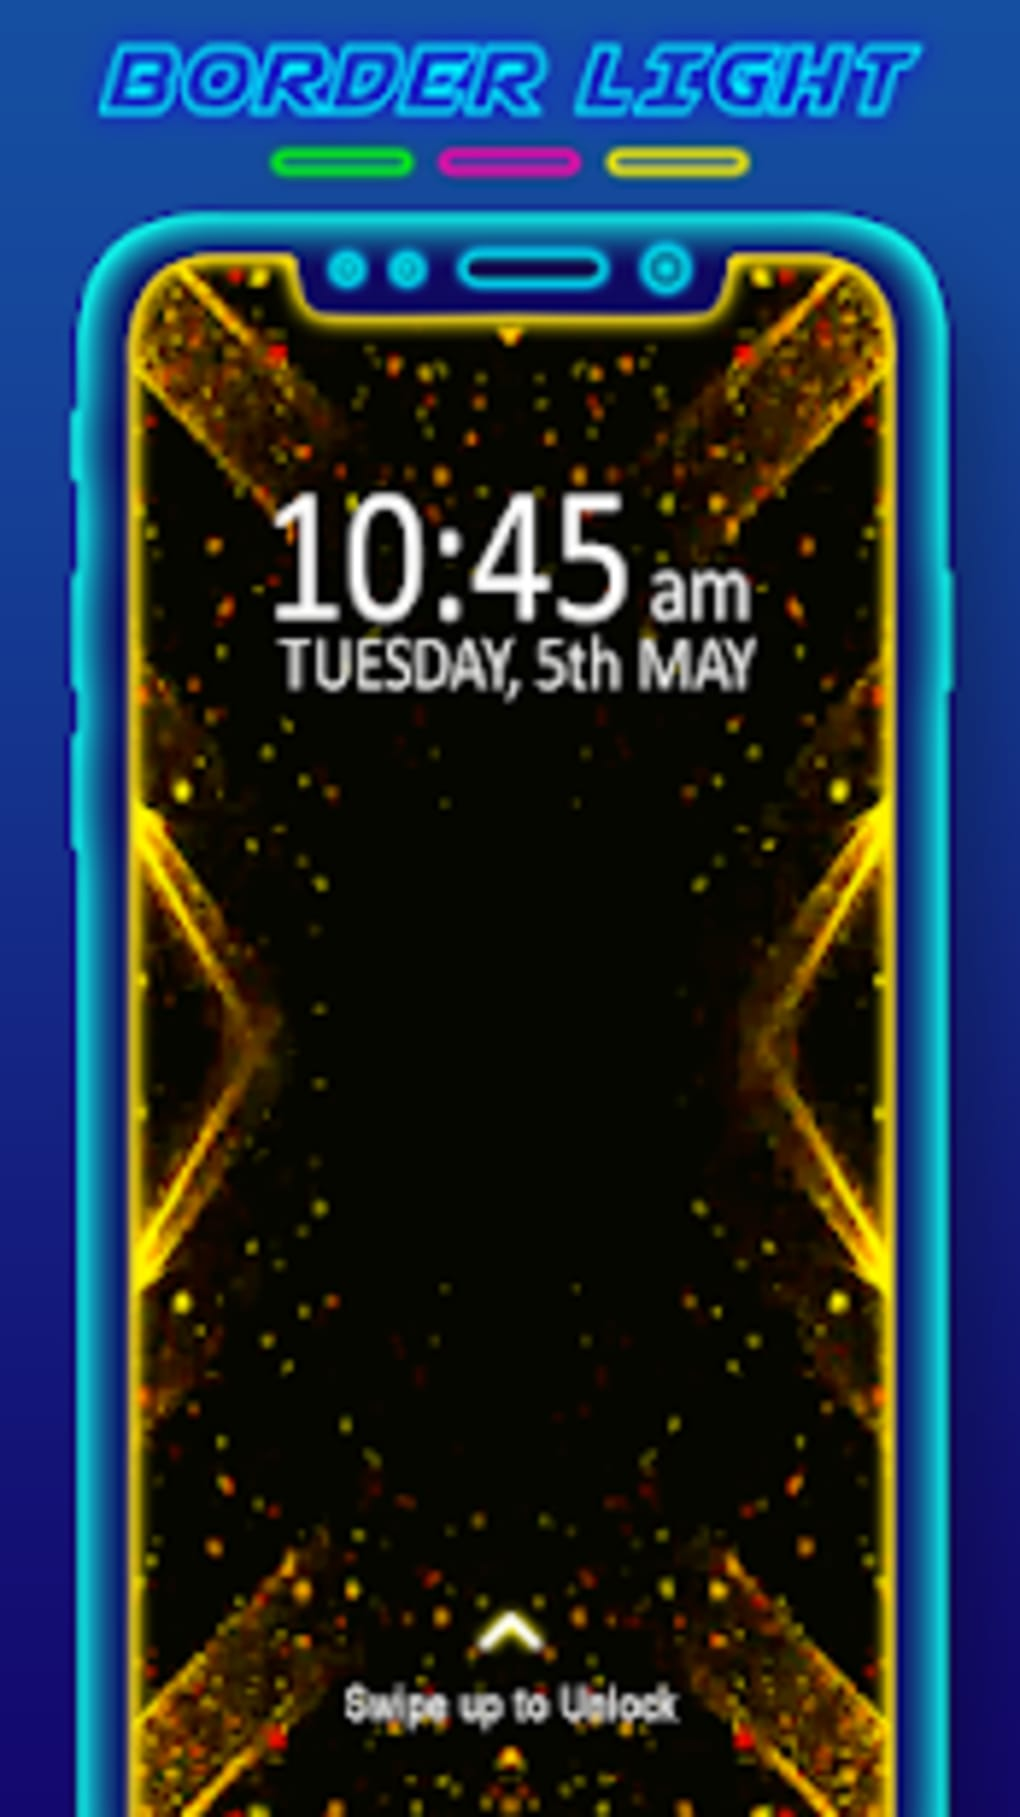 Border Light - LED Color Live Wallpaper for Android - Download